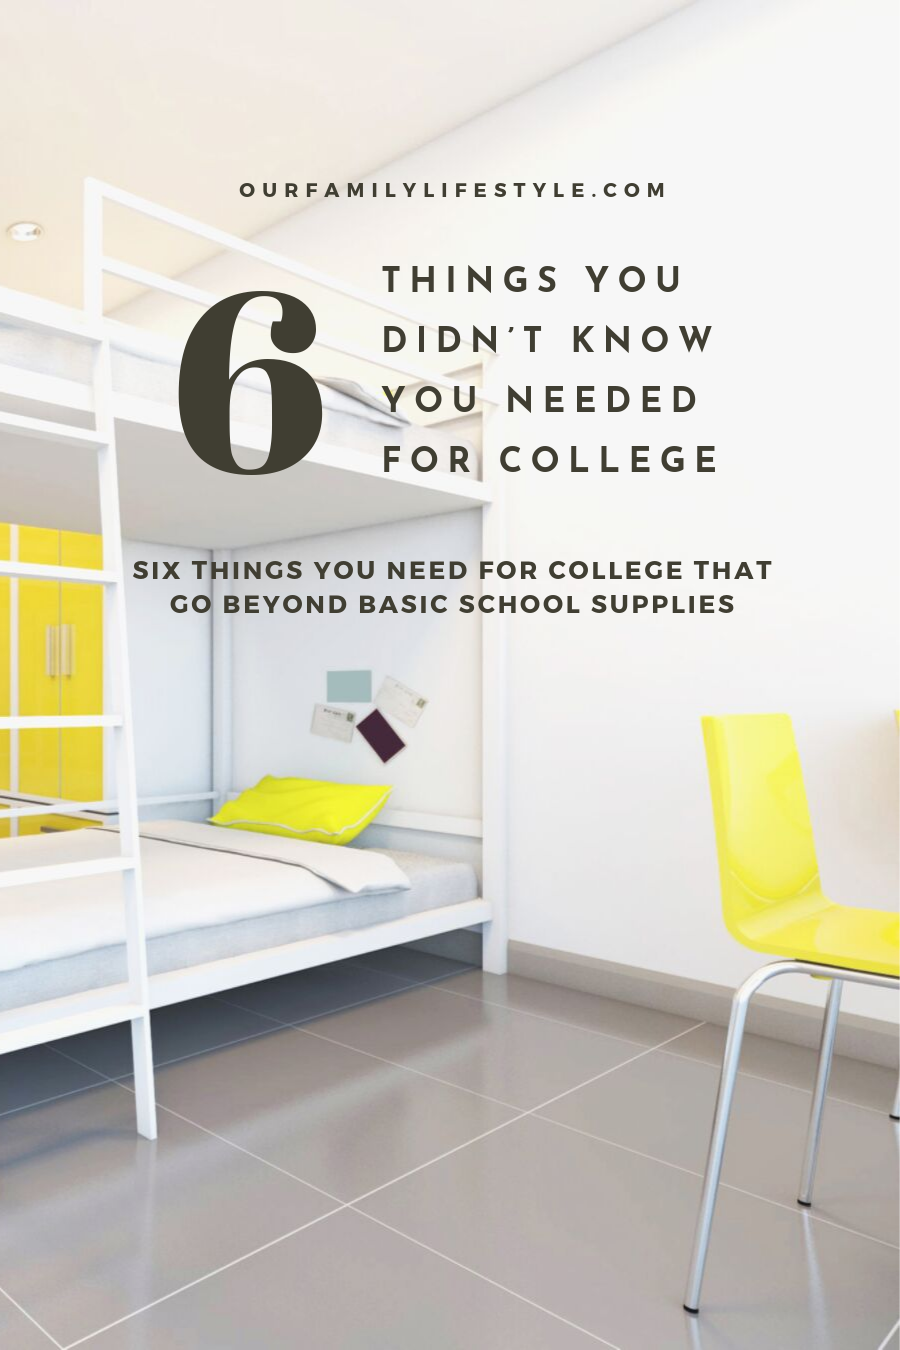 6 Things You Didn't Know You Needed for College